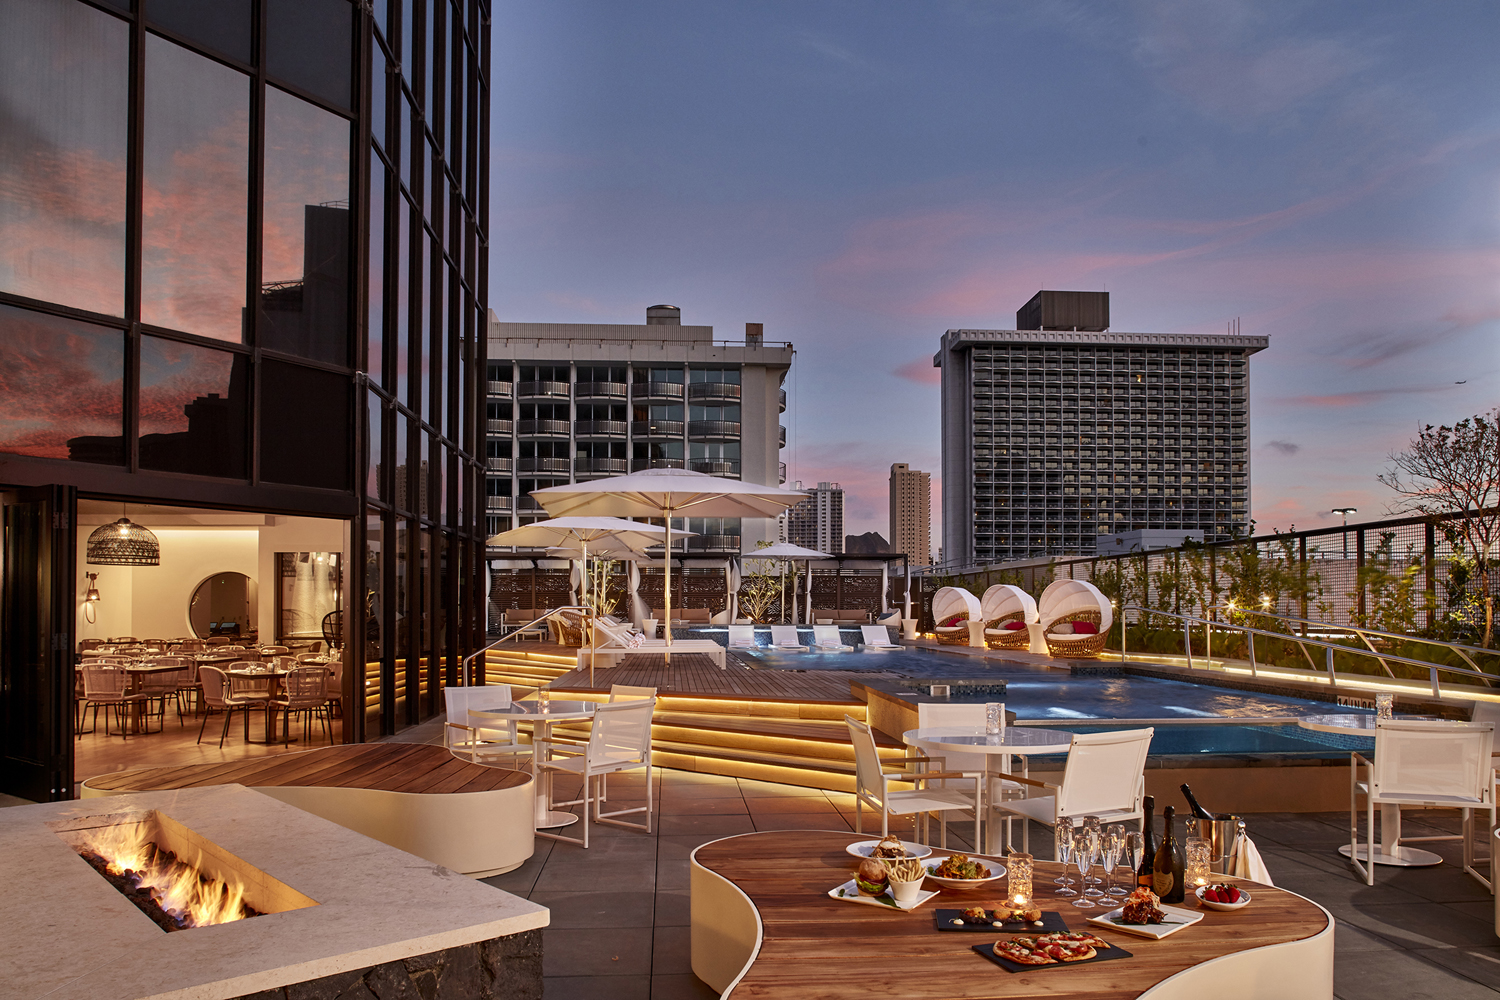 Hyatt Centric Waikiki Beach is the first Hyatt Centric-branded hotel to open in Hawaii.